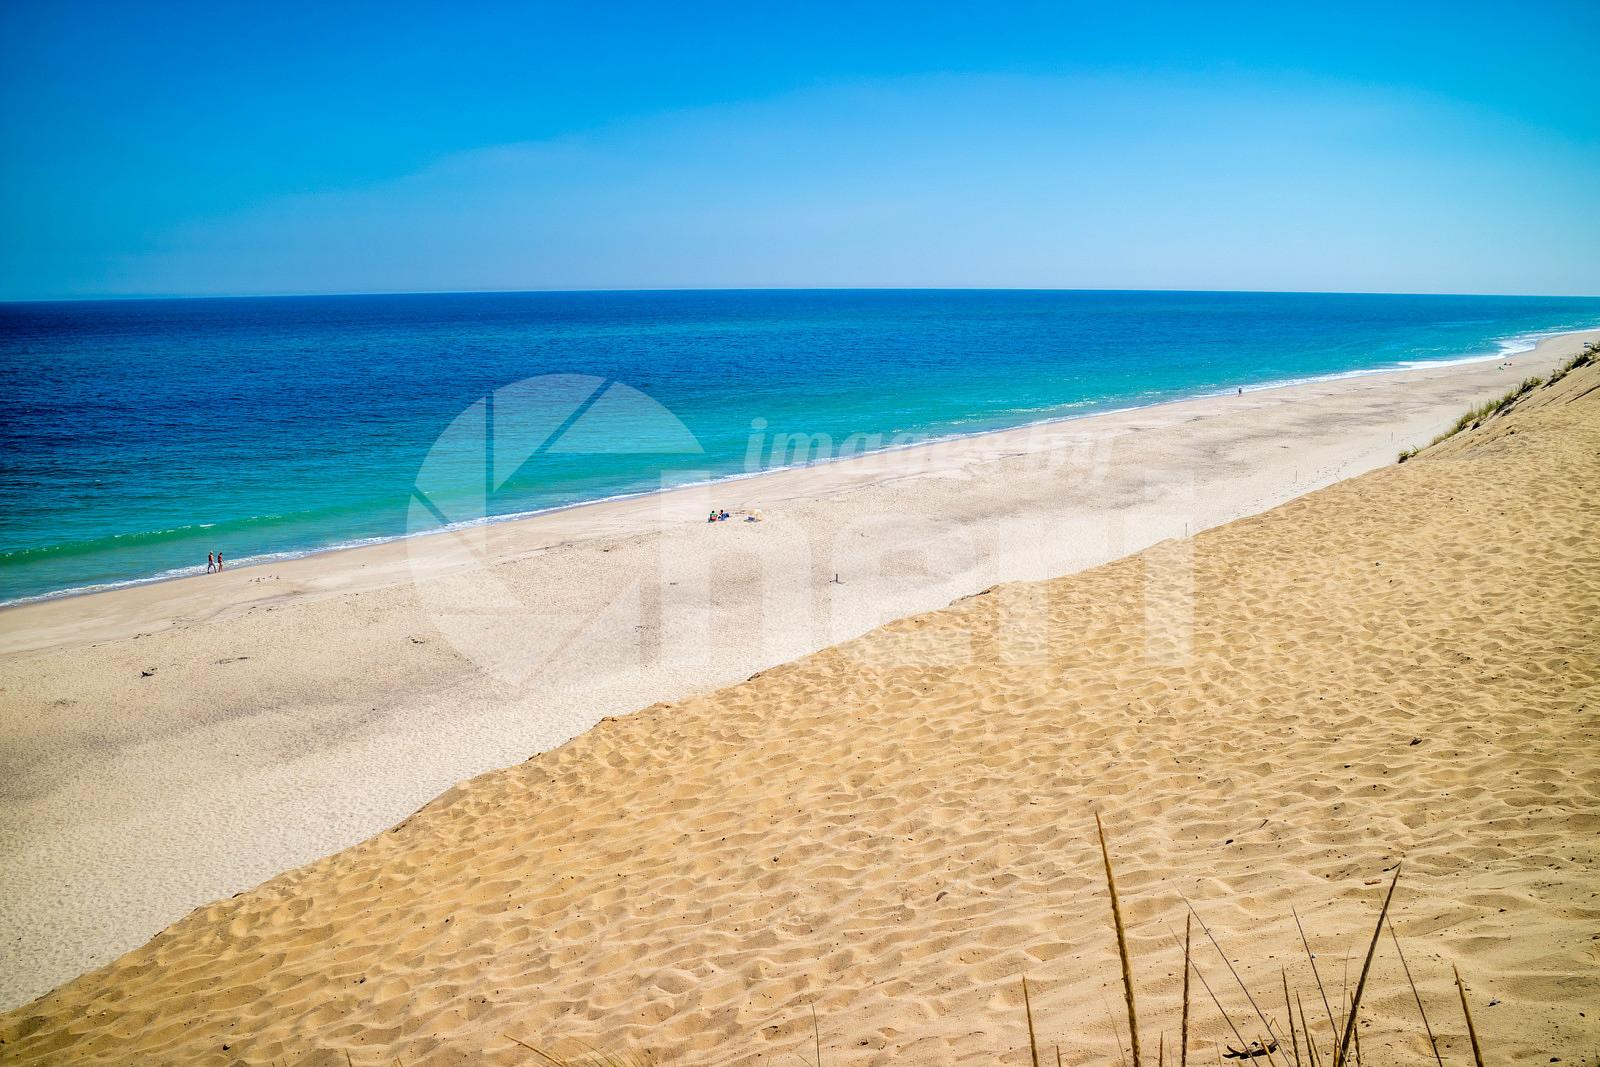 The Marconi Beach in Cape Cod National Seashore, Massachusetts